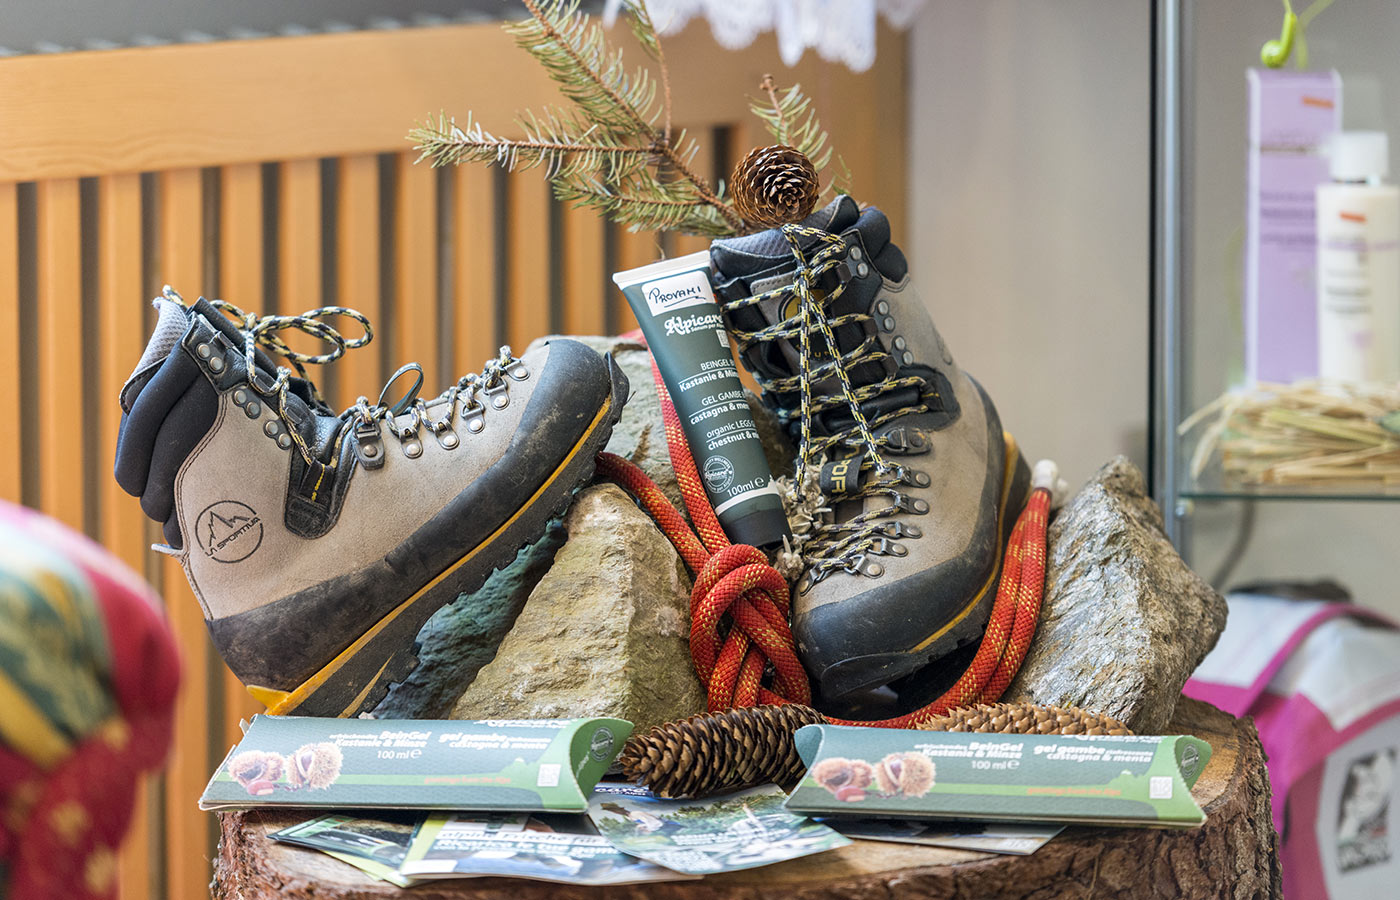 Hiking boots and mountain equipment at Hotel Alpino